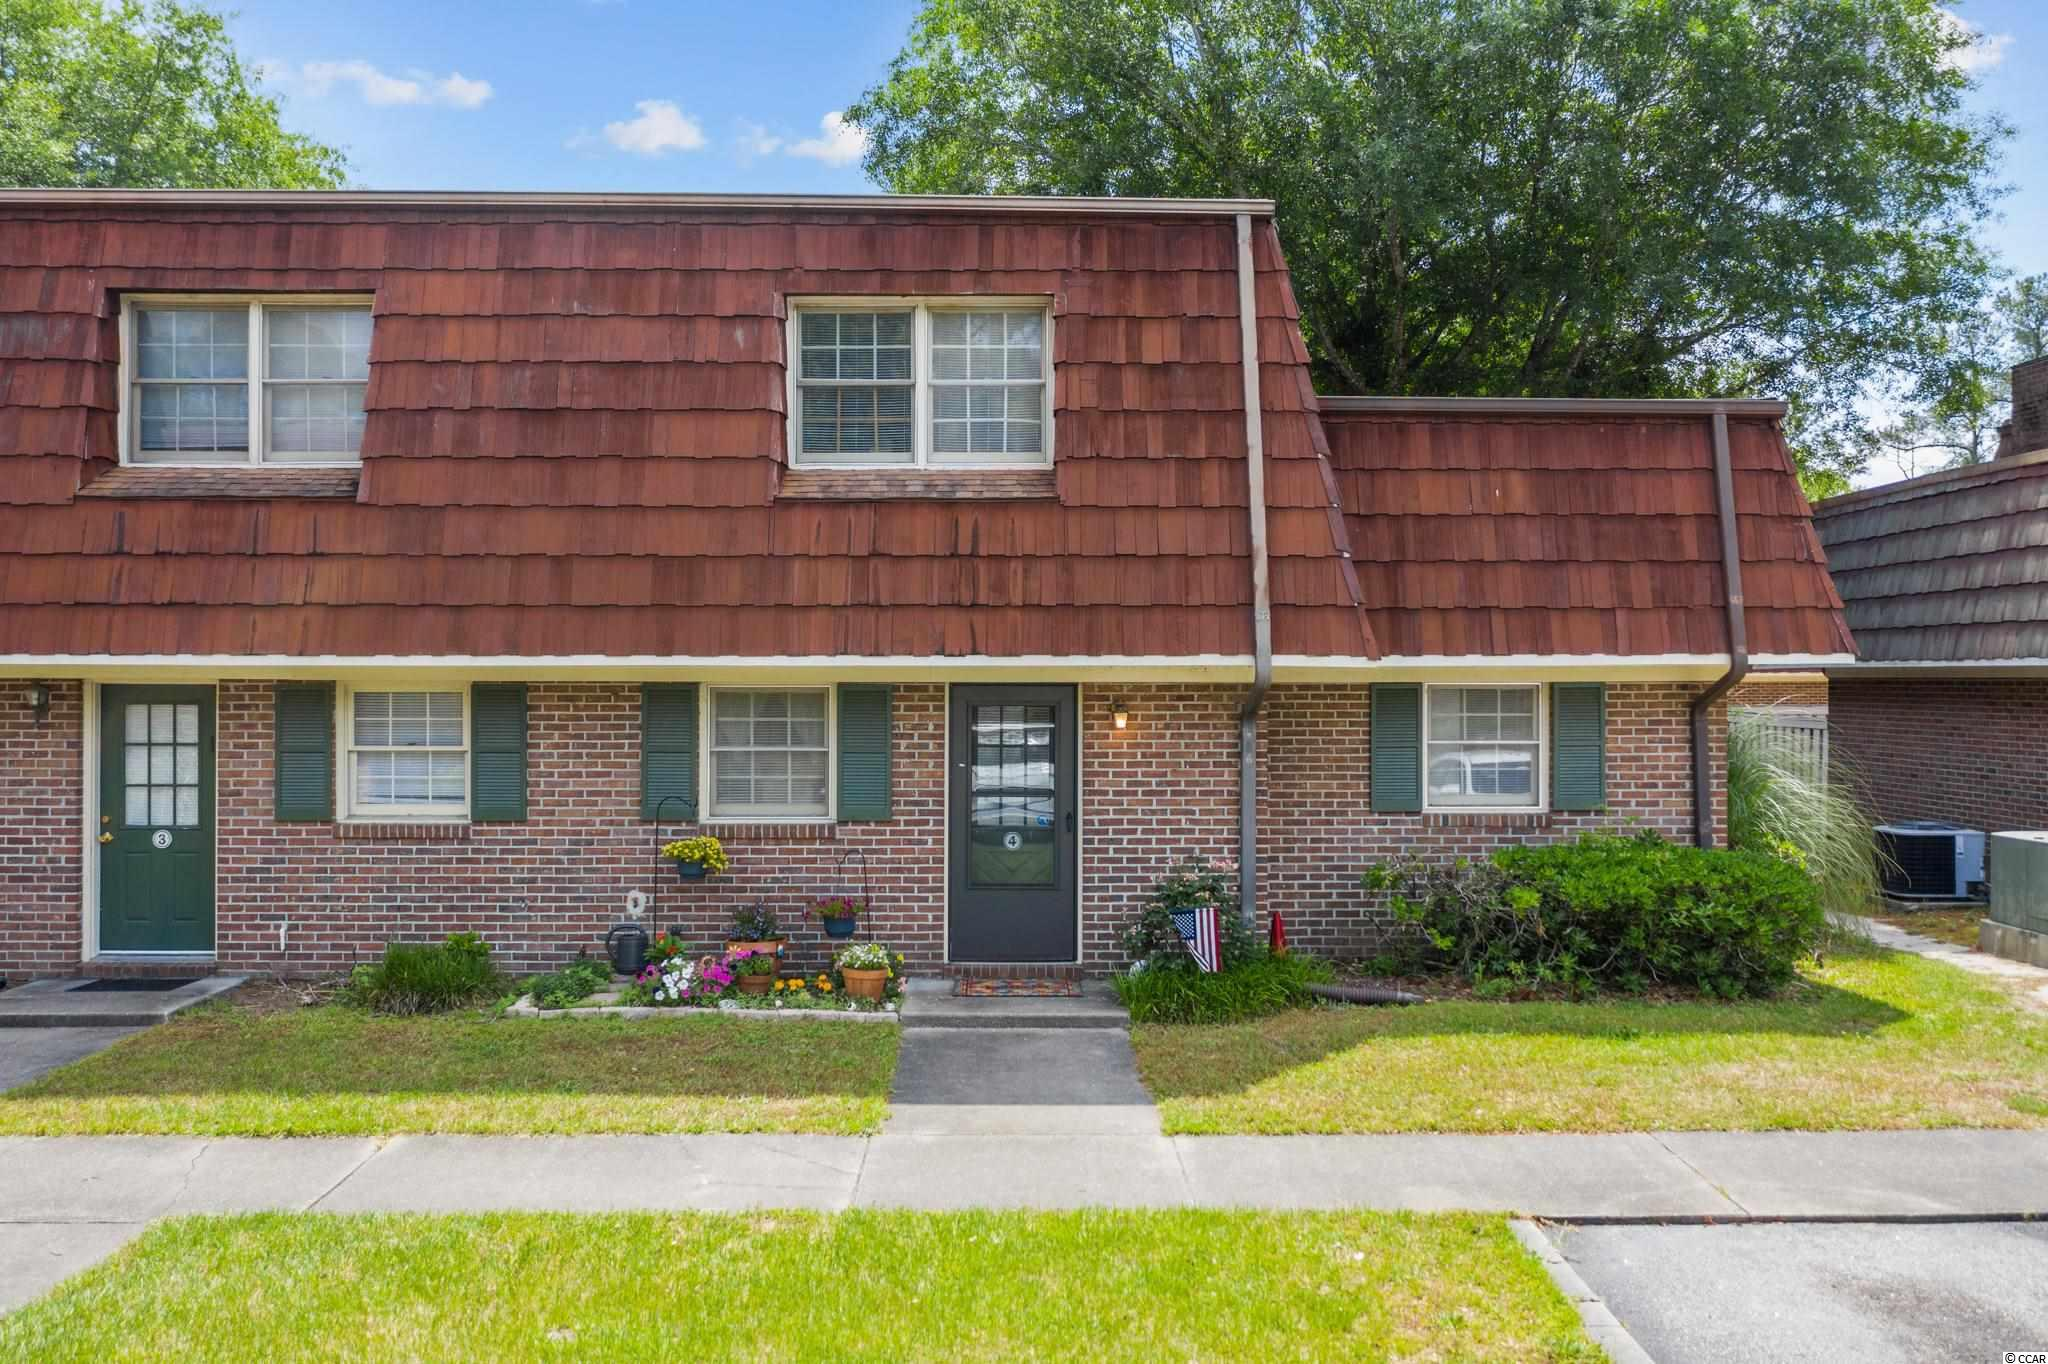 Heres an awesome opportunity to own a 3 bedroom end unit townhouse within minutes to the  Beach. This spacious townhome offers tons of storage space, large outdoor patio, and a first floor bedroom and bathroom. With Coastal Carolina College literally in the backyard, this is a great investment for students, or first time home buyers. Carolina Pine has 2 community pools and the HOA includes water, sewer, trash pickup and more. Dont miss out!